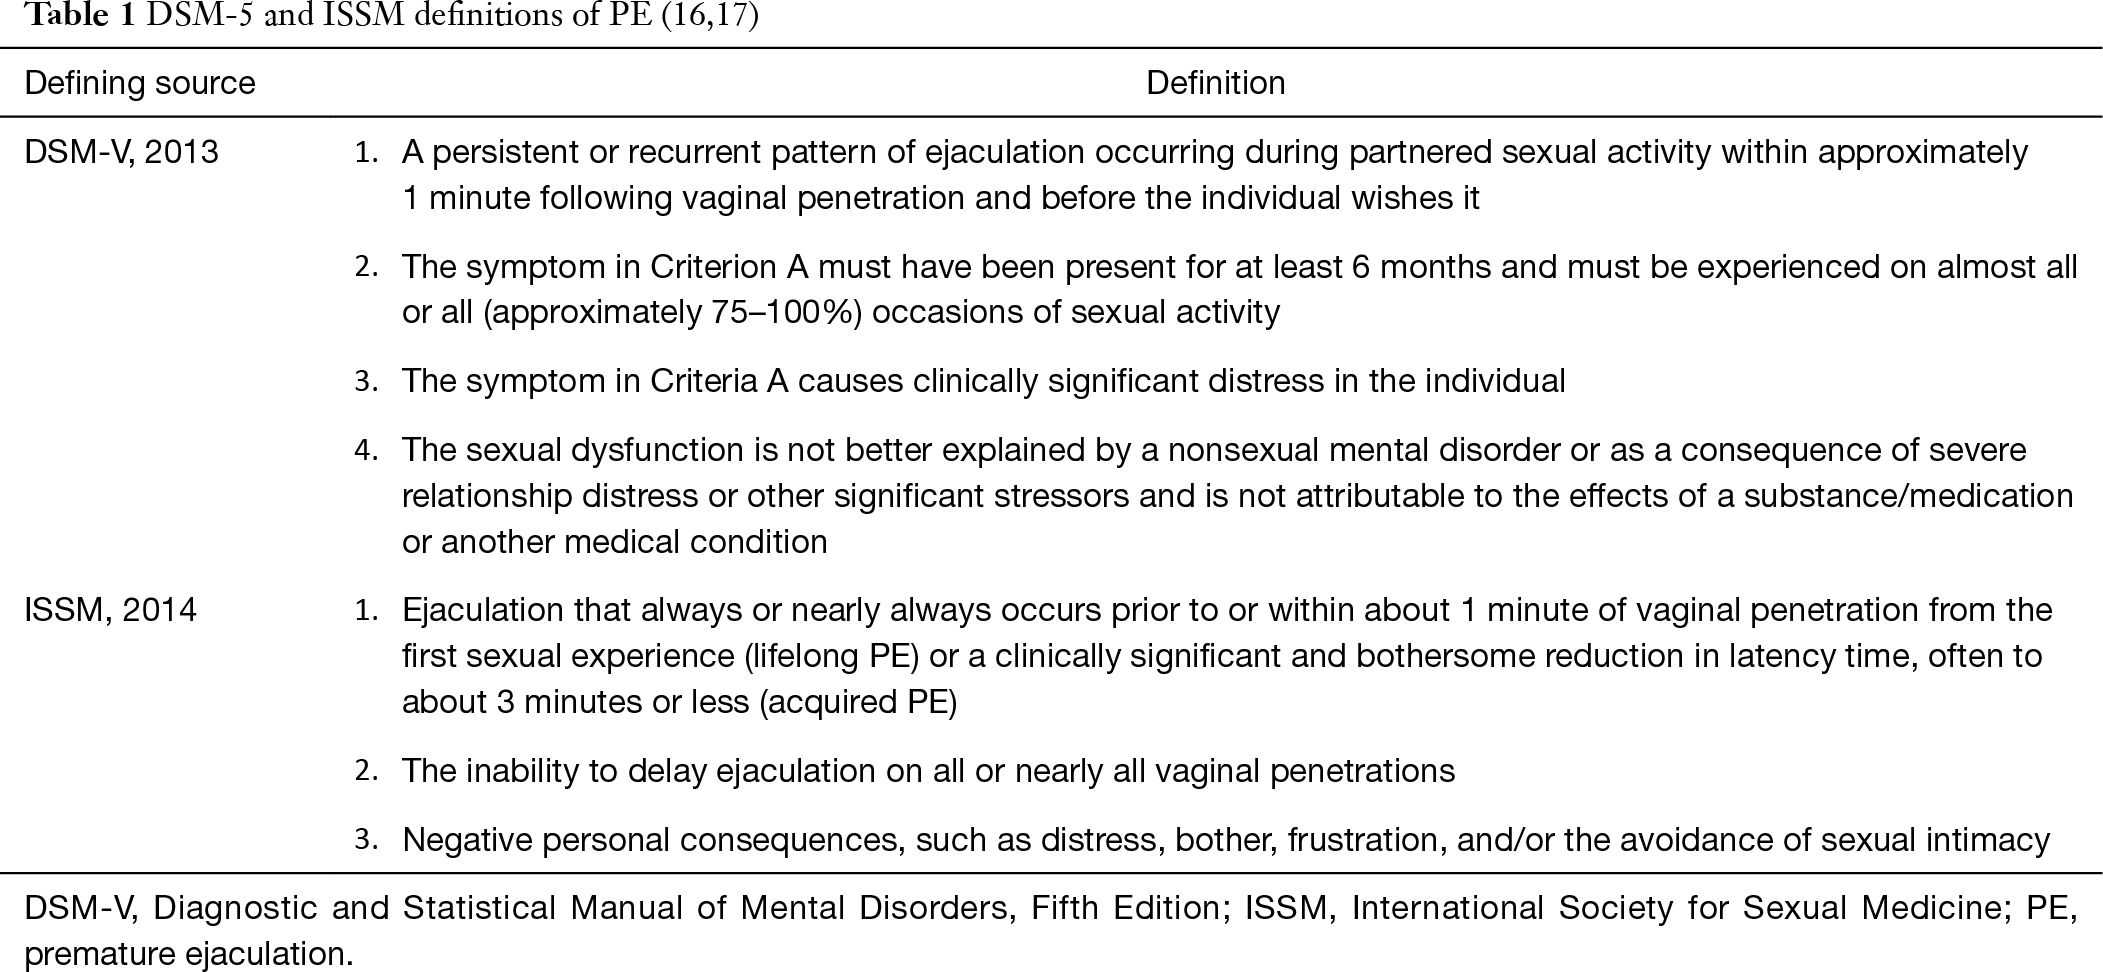 Pe sexual dysfunction